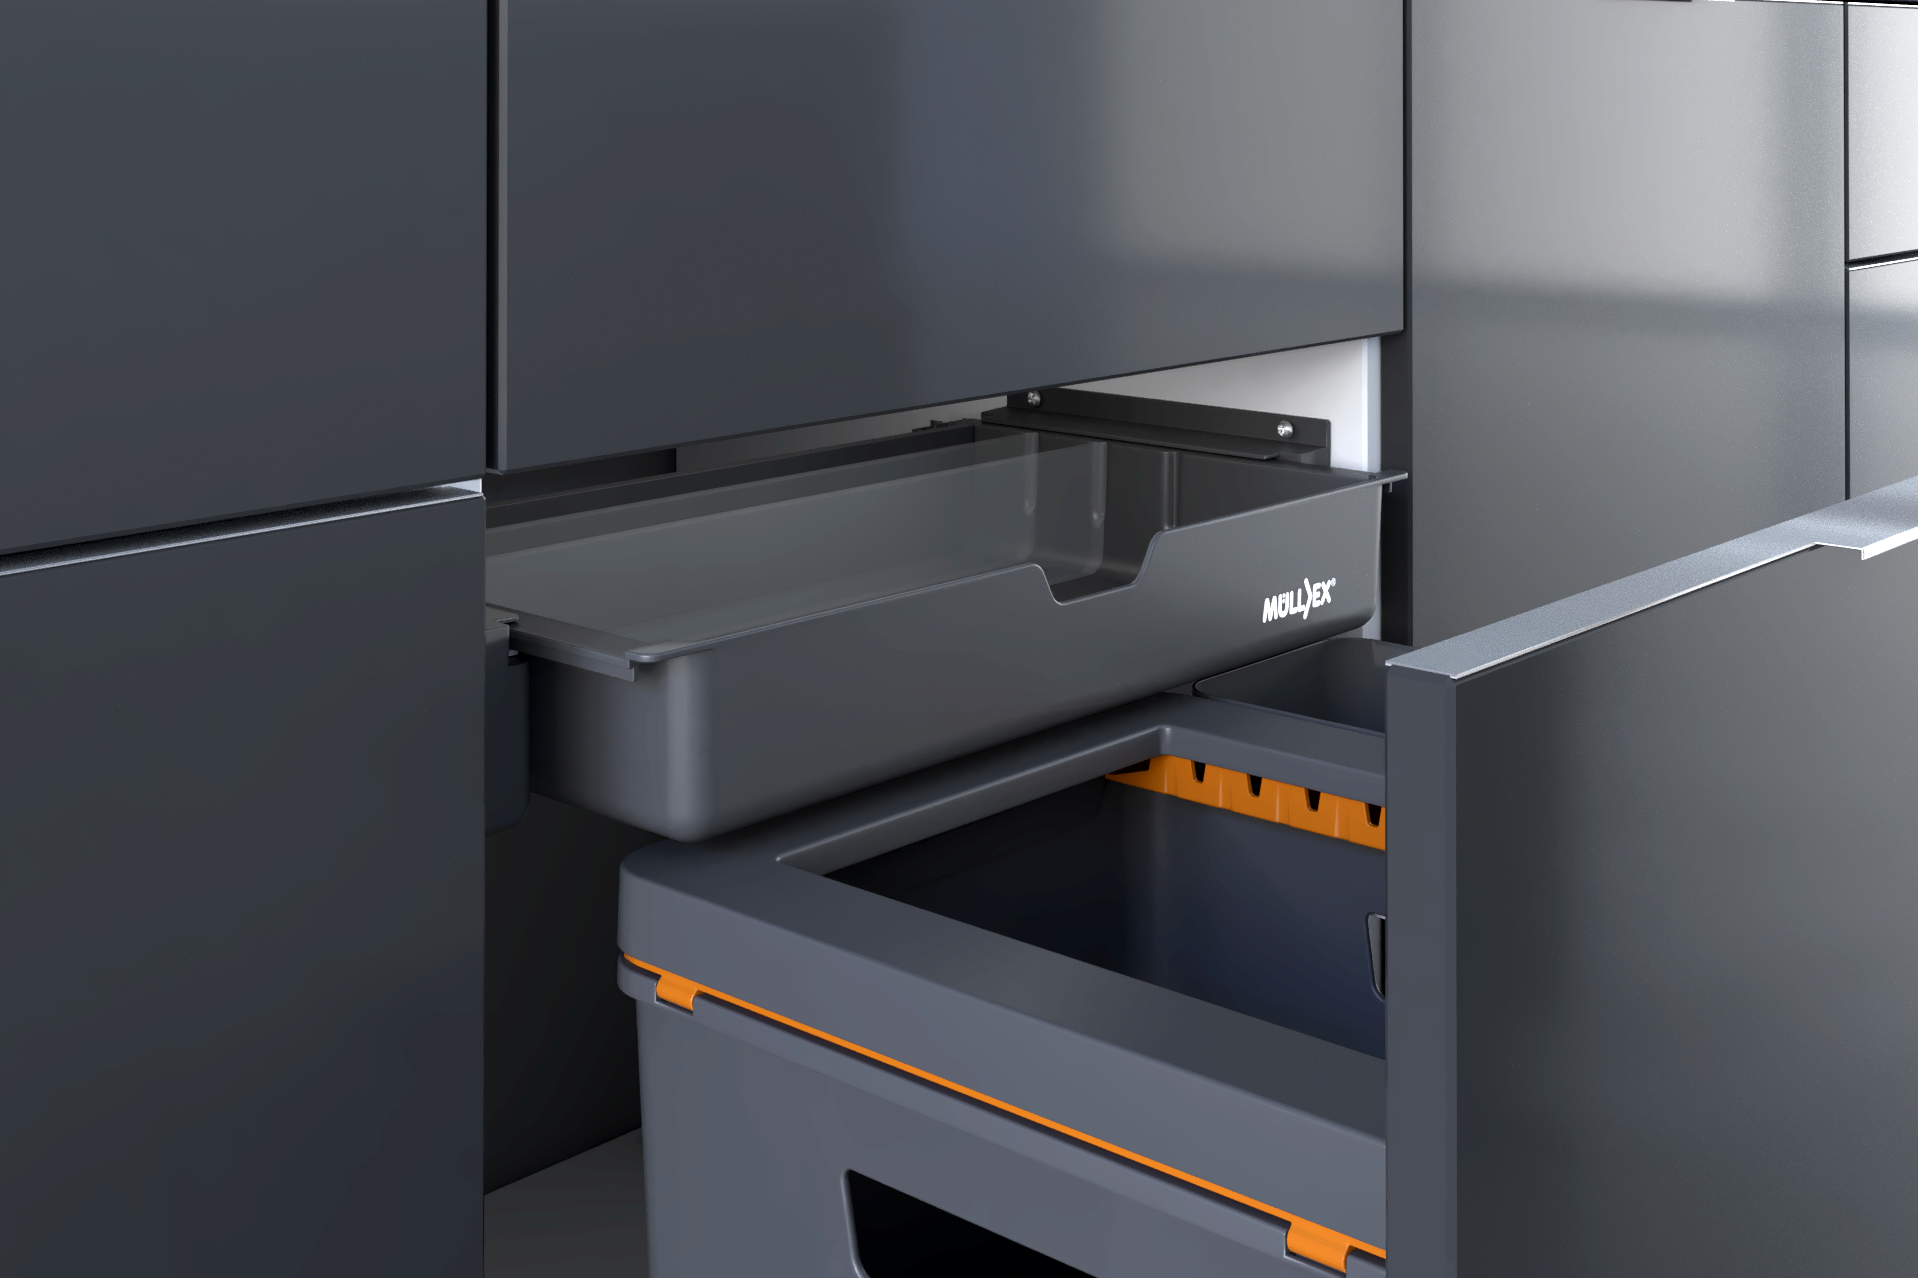 Clever waste separation systems for the kitchen thanks to the adjustable rear panel.